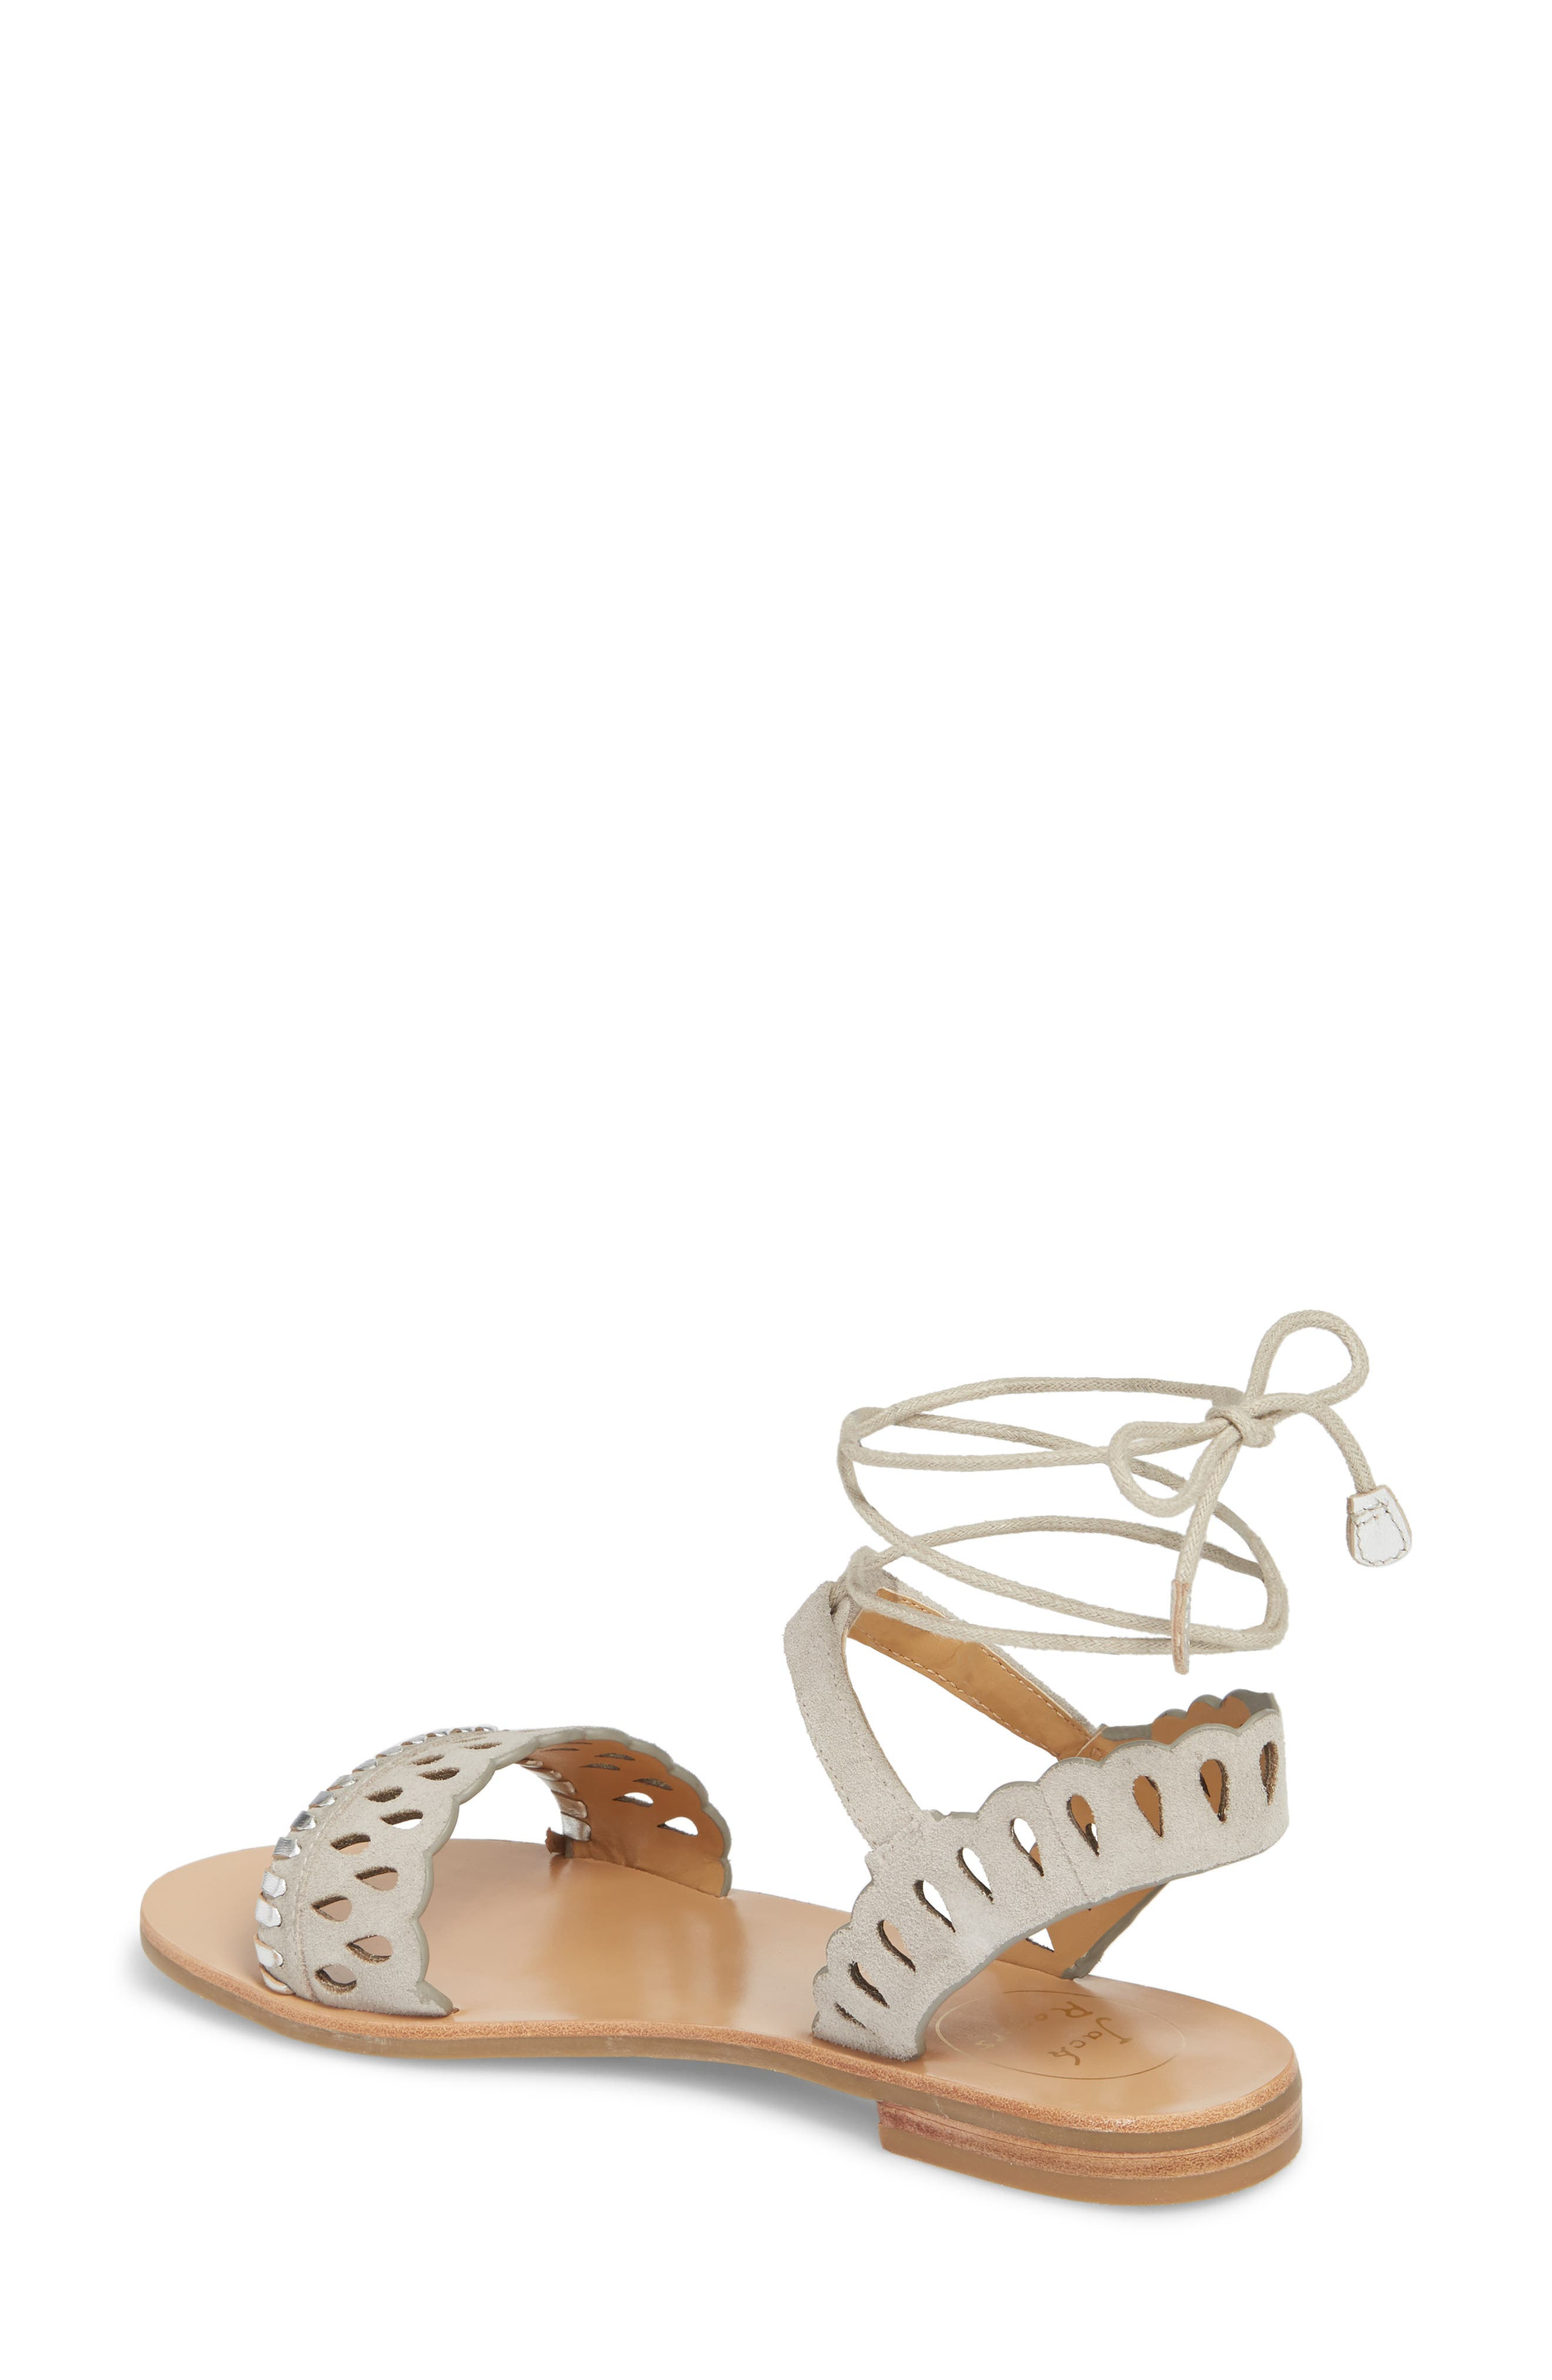 Ruby Perforated Sandal,                             Alternate thumbnail 2, color,                             027